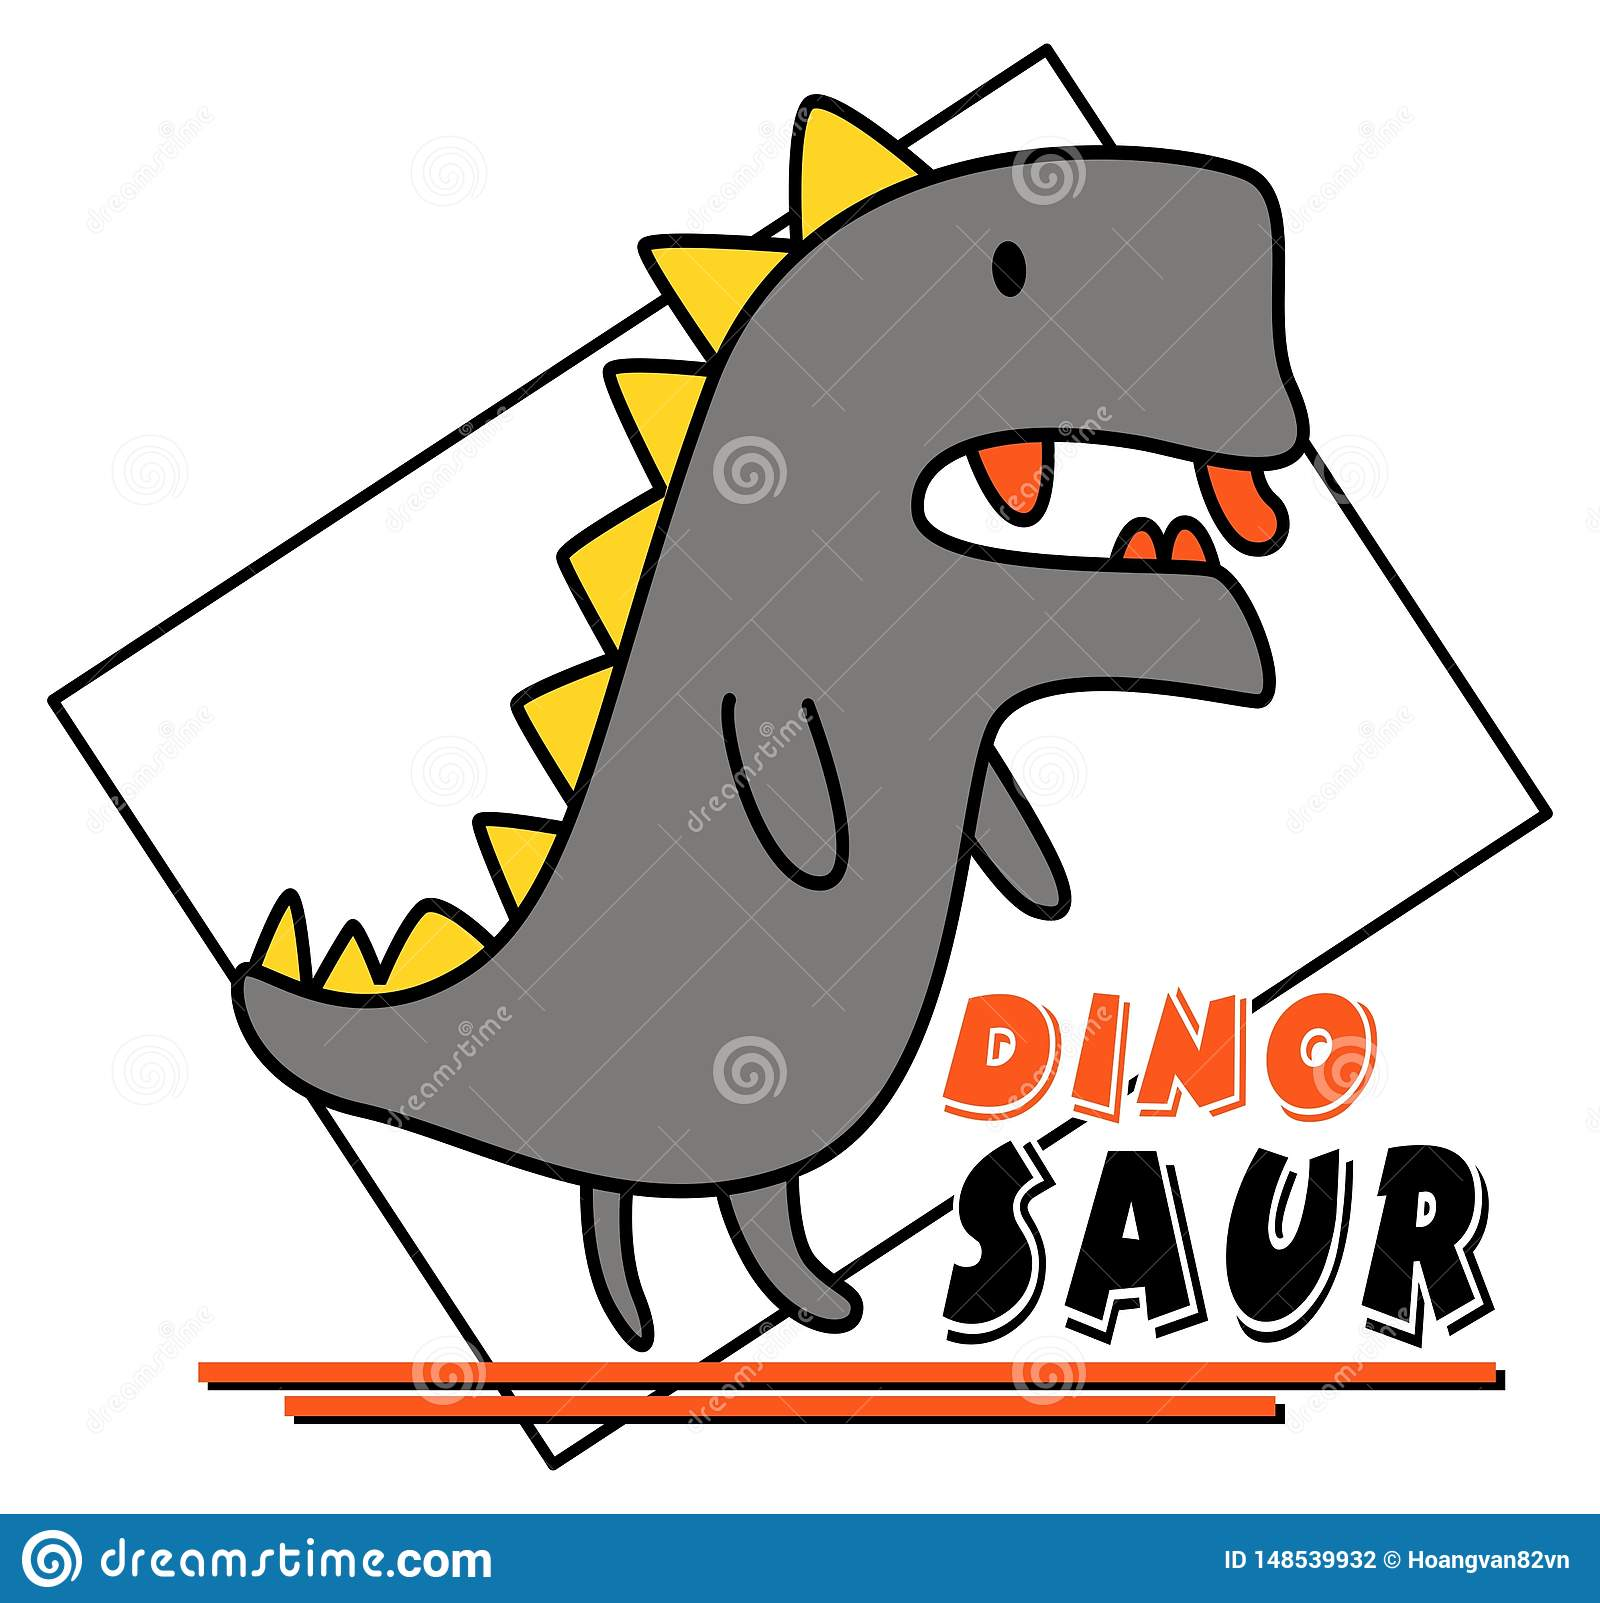 Cute dinosaur vector design